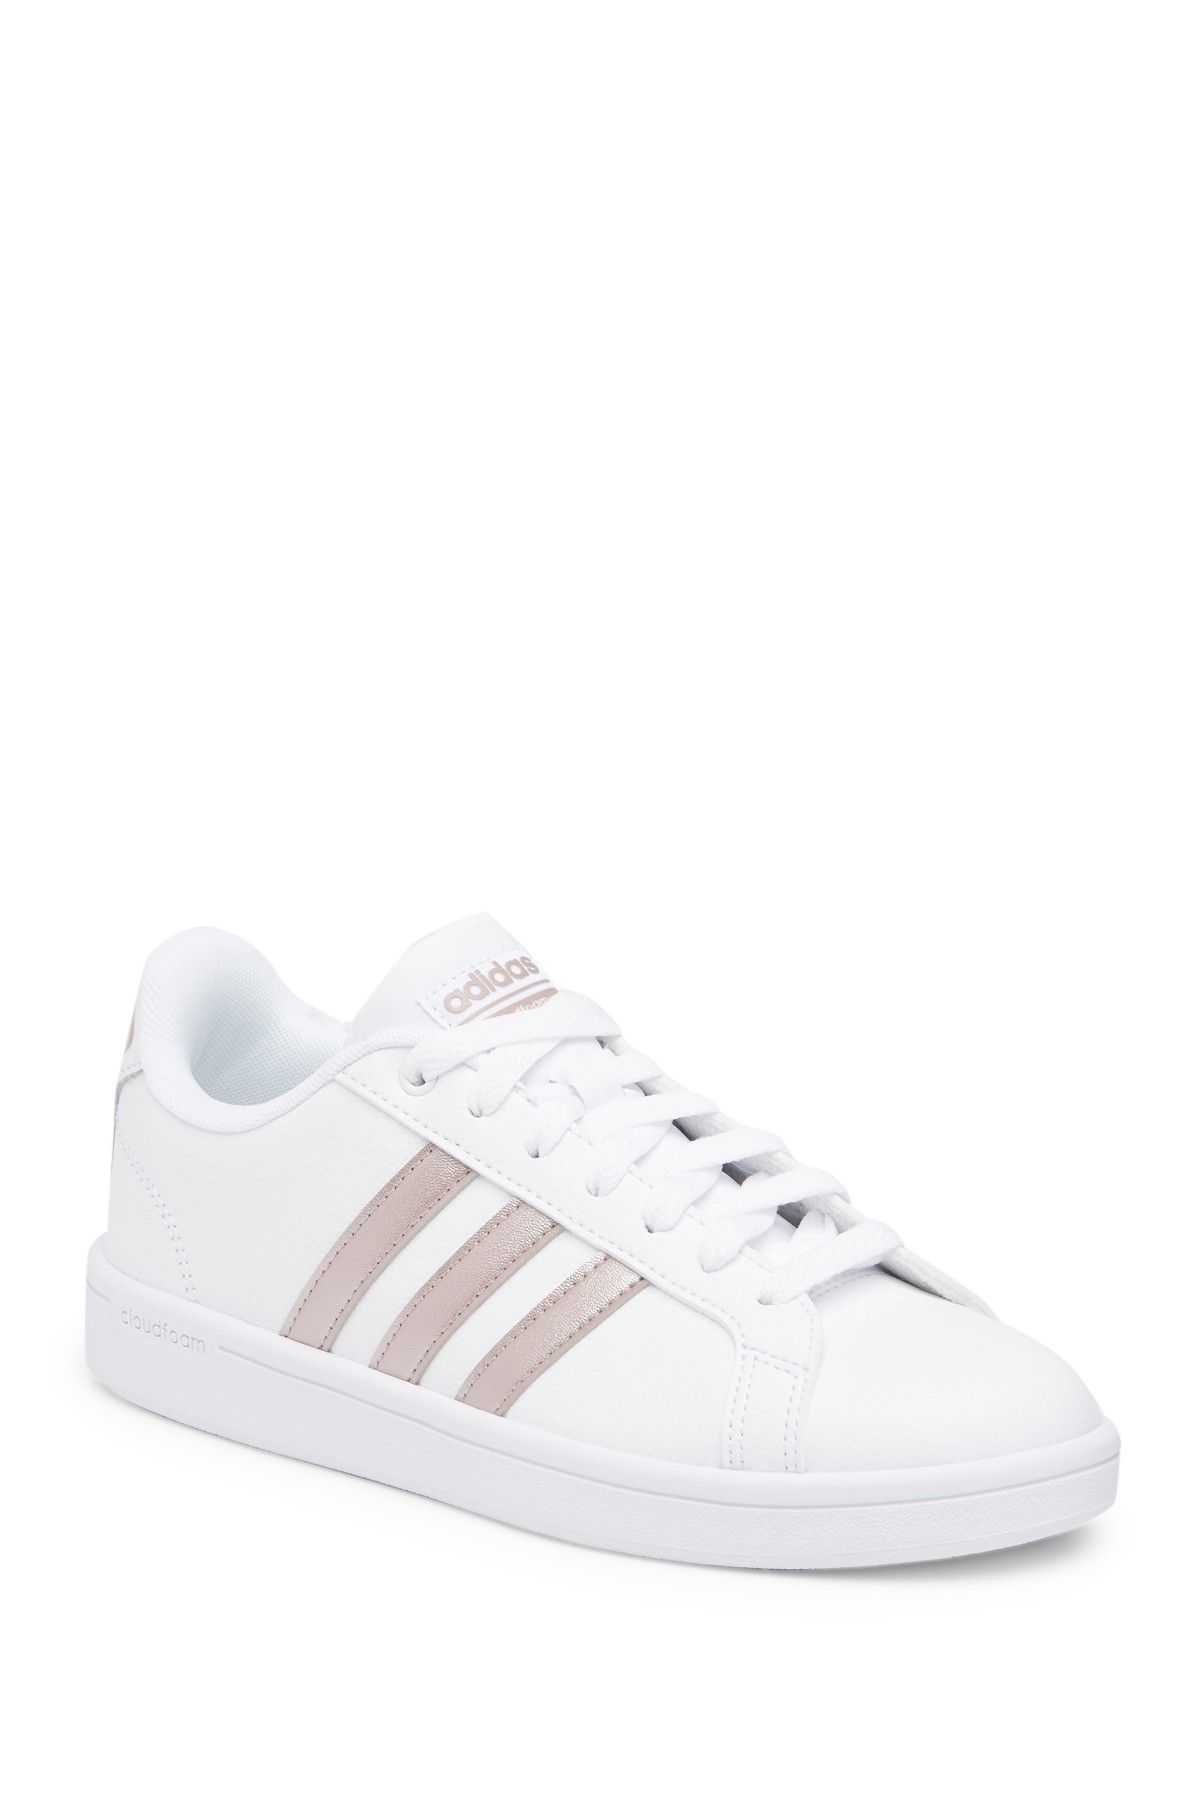 adidas | Cloudfoam Advantage Leather Sneaker | Nordstrom Rack